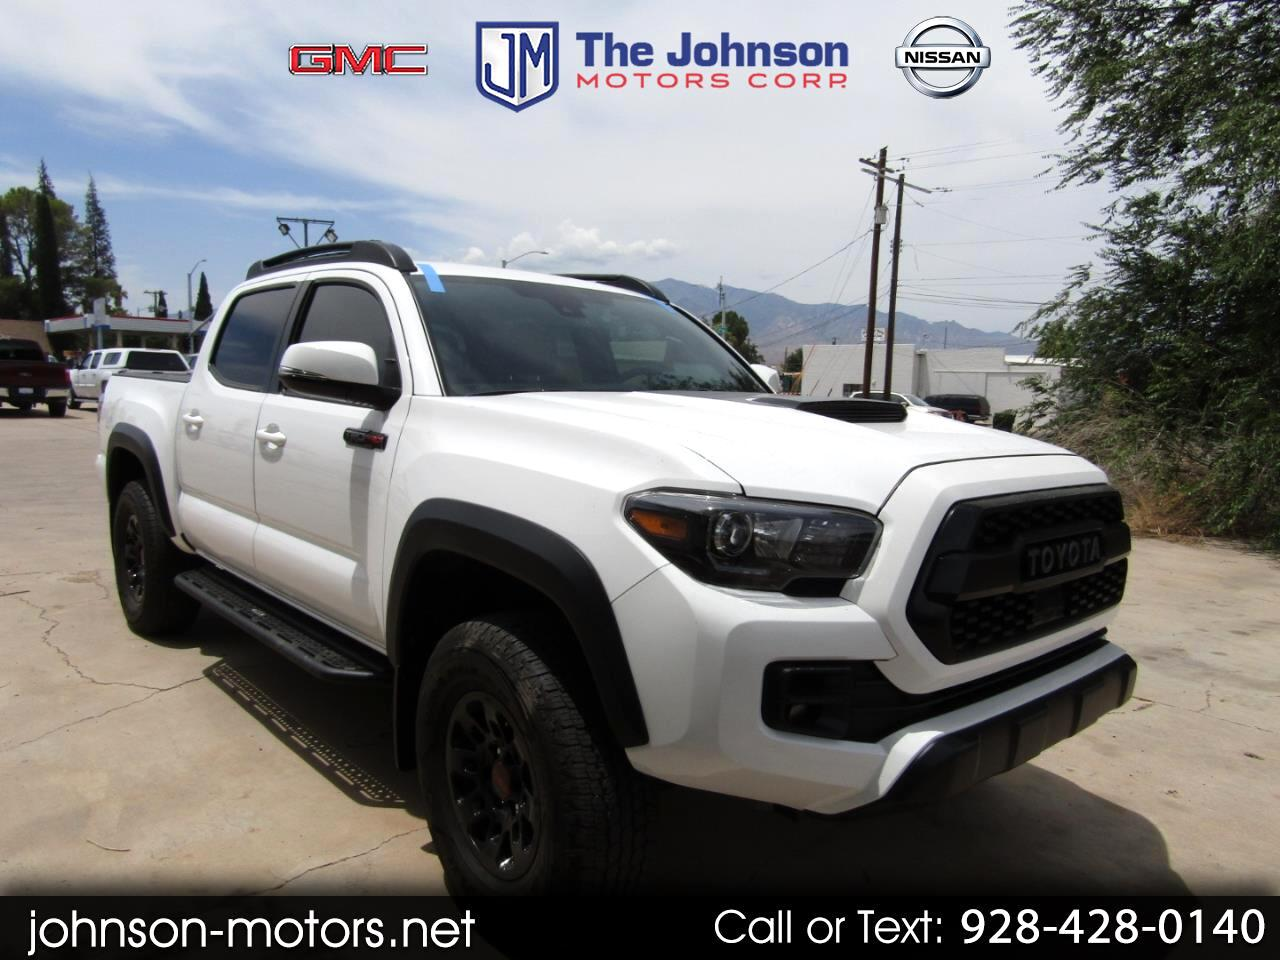 2018 Toyota Tacoma TRD Pro Double Cab 5' Bed V6 4x4 AT (Natl)